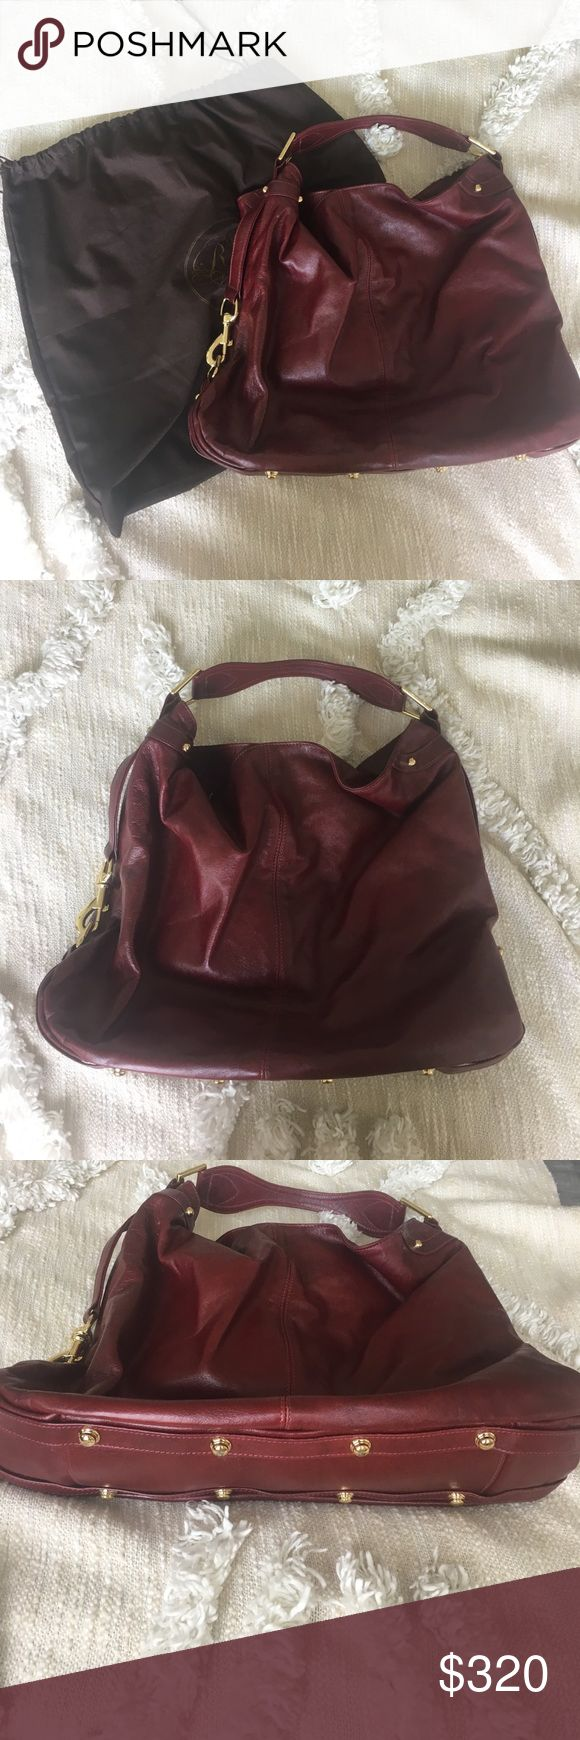 // Rebecca Minkoff Nikki Handbag // Only worn a few times, in like new condition! Leather is in perfect condition, only one little stain as seen in the pictures inside the bag Rebecca Minkoff Bags Totes